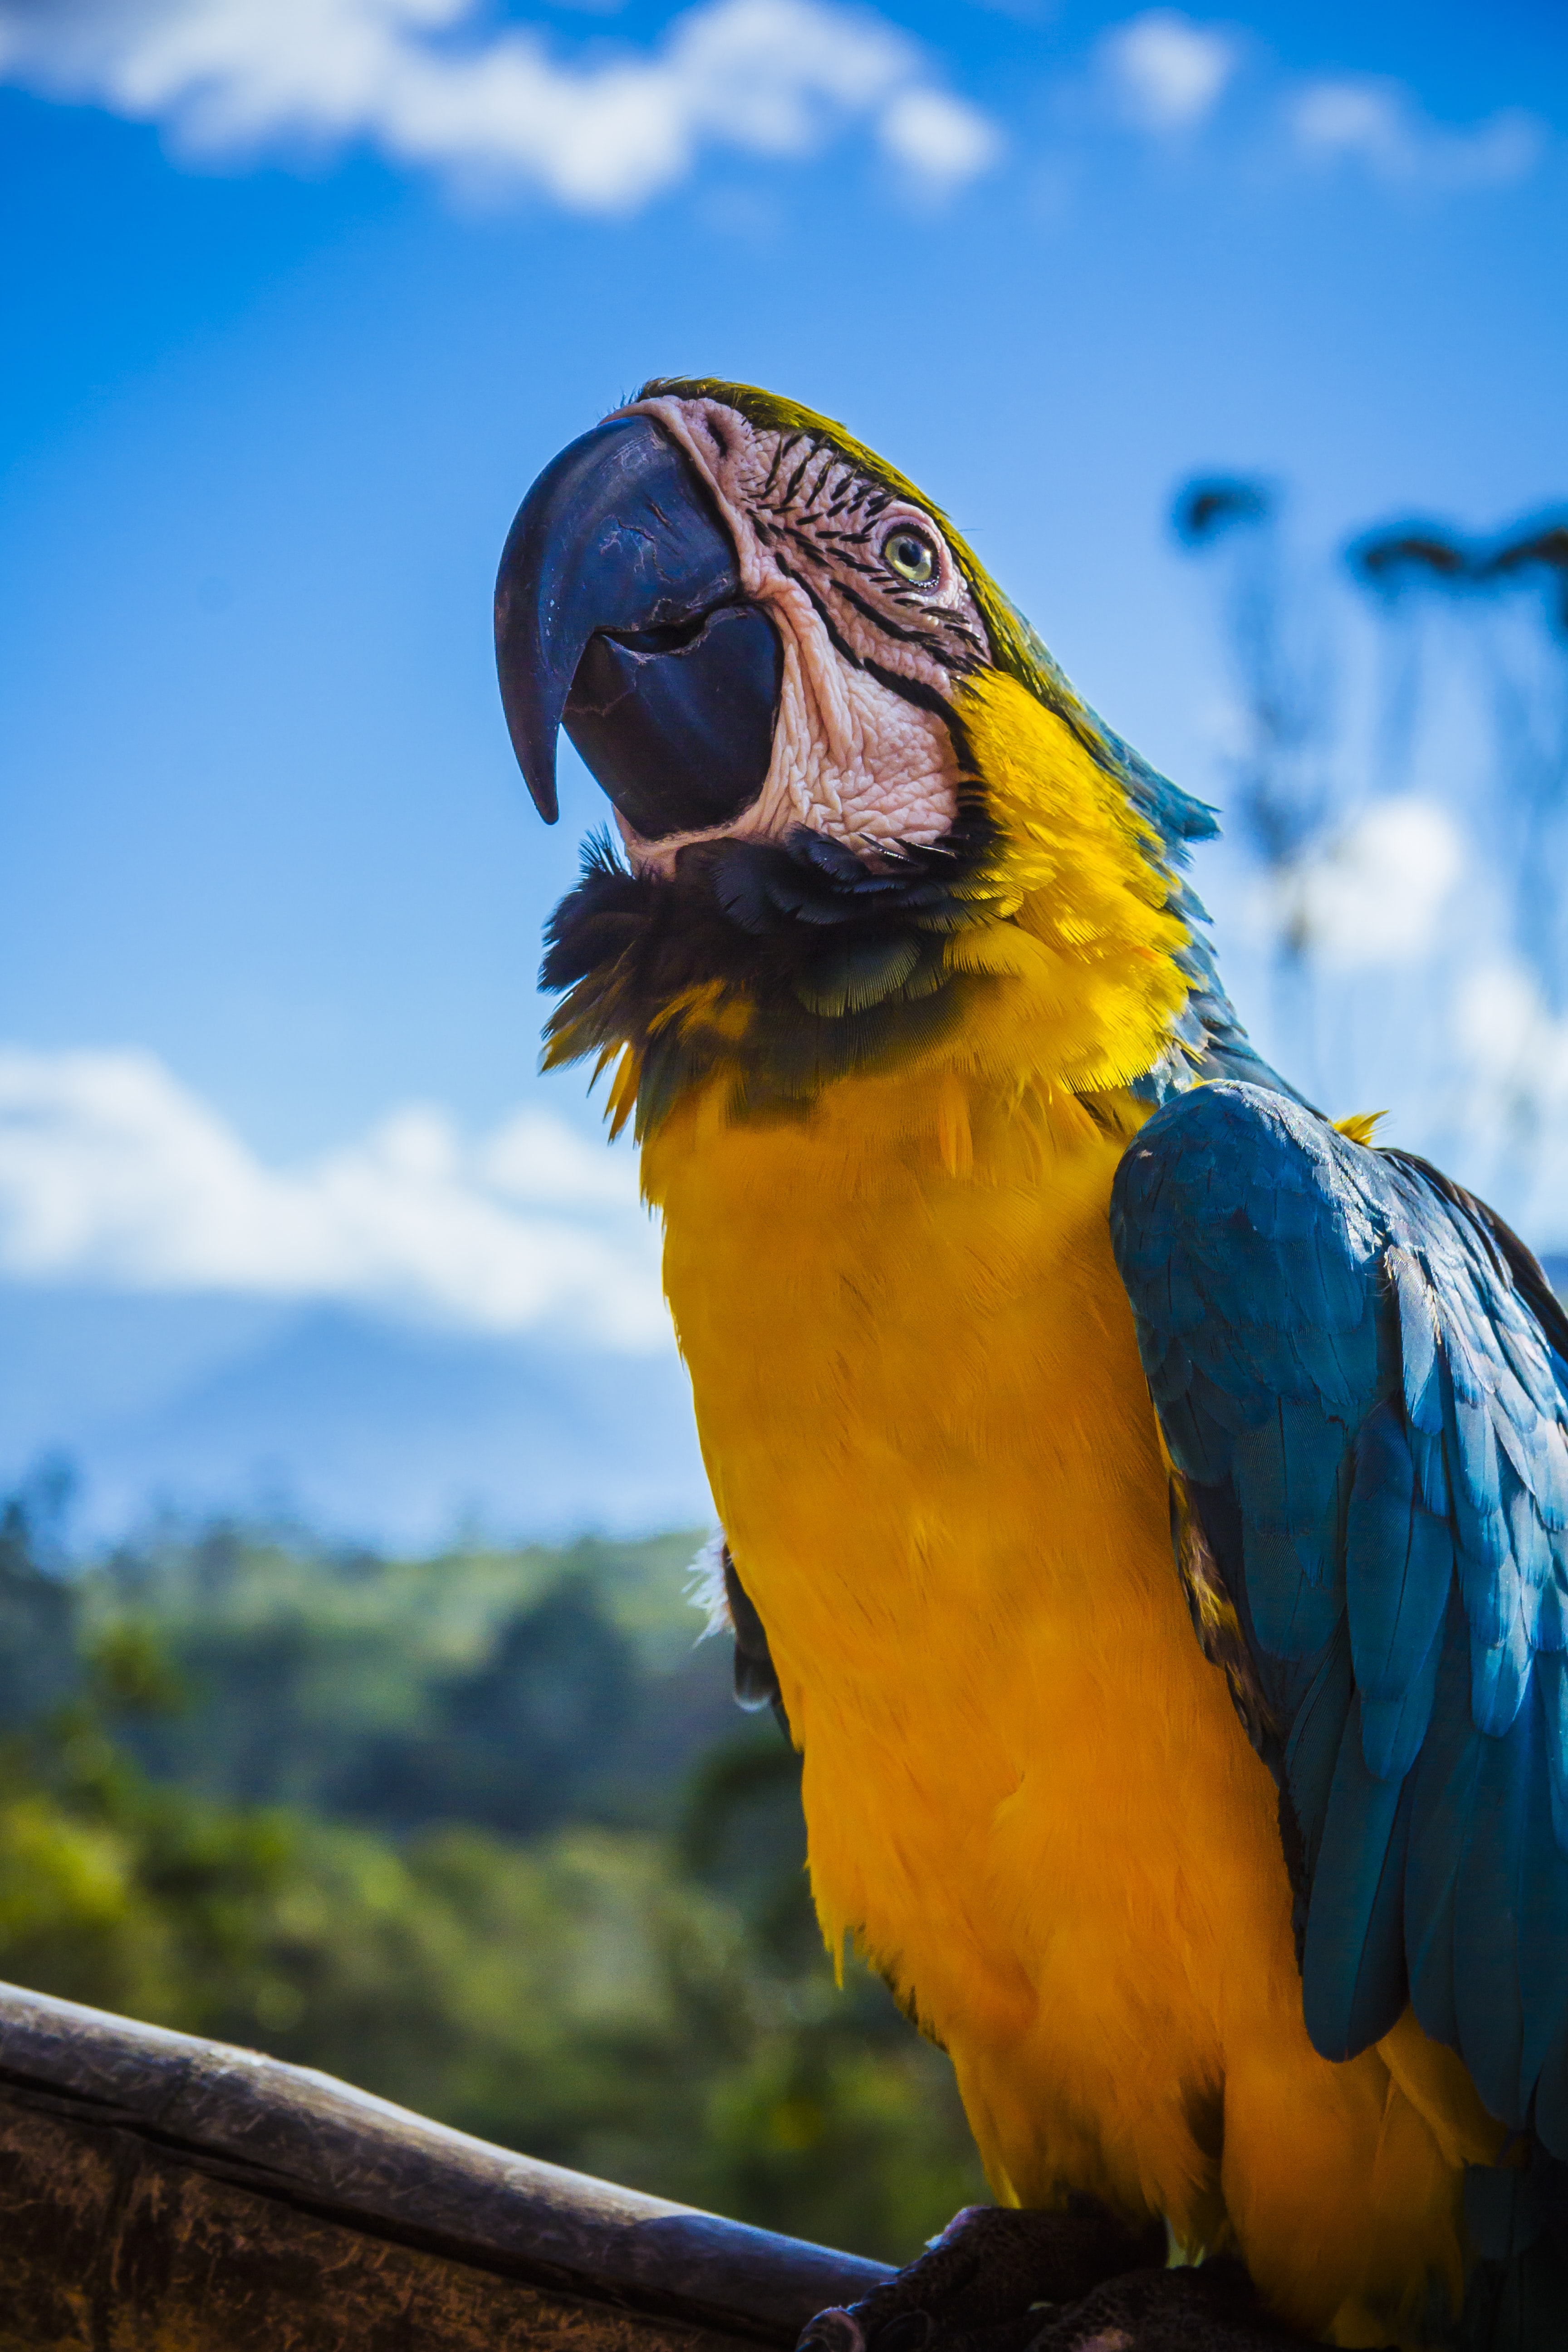 yellow and blue parrot perched on wood